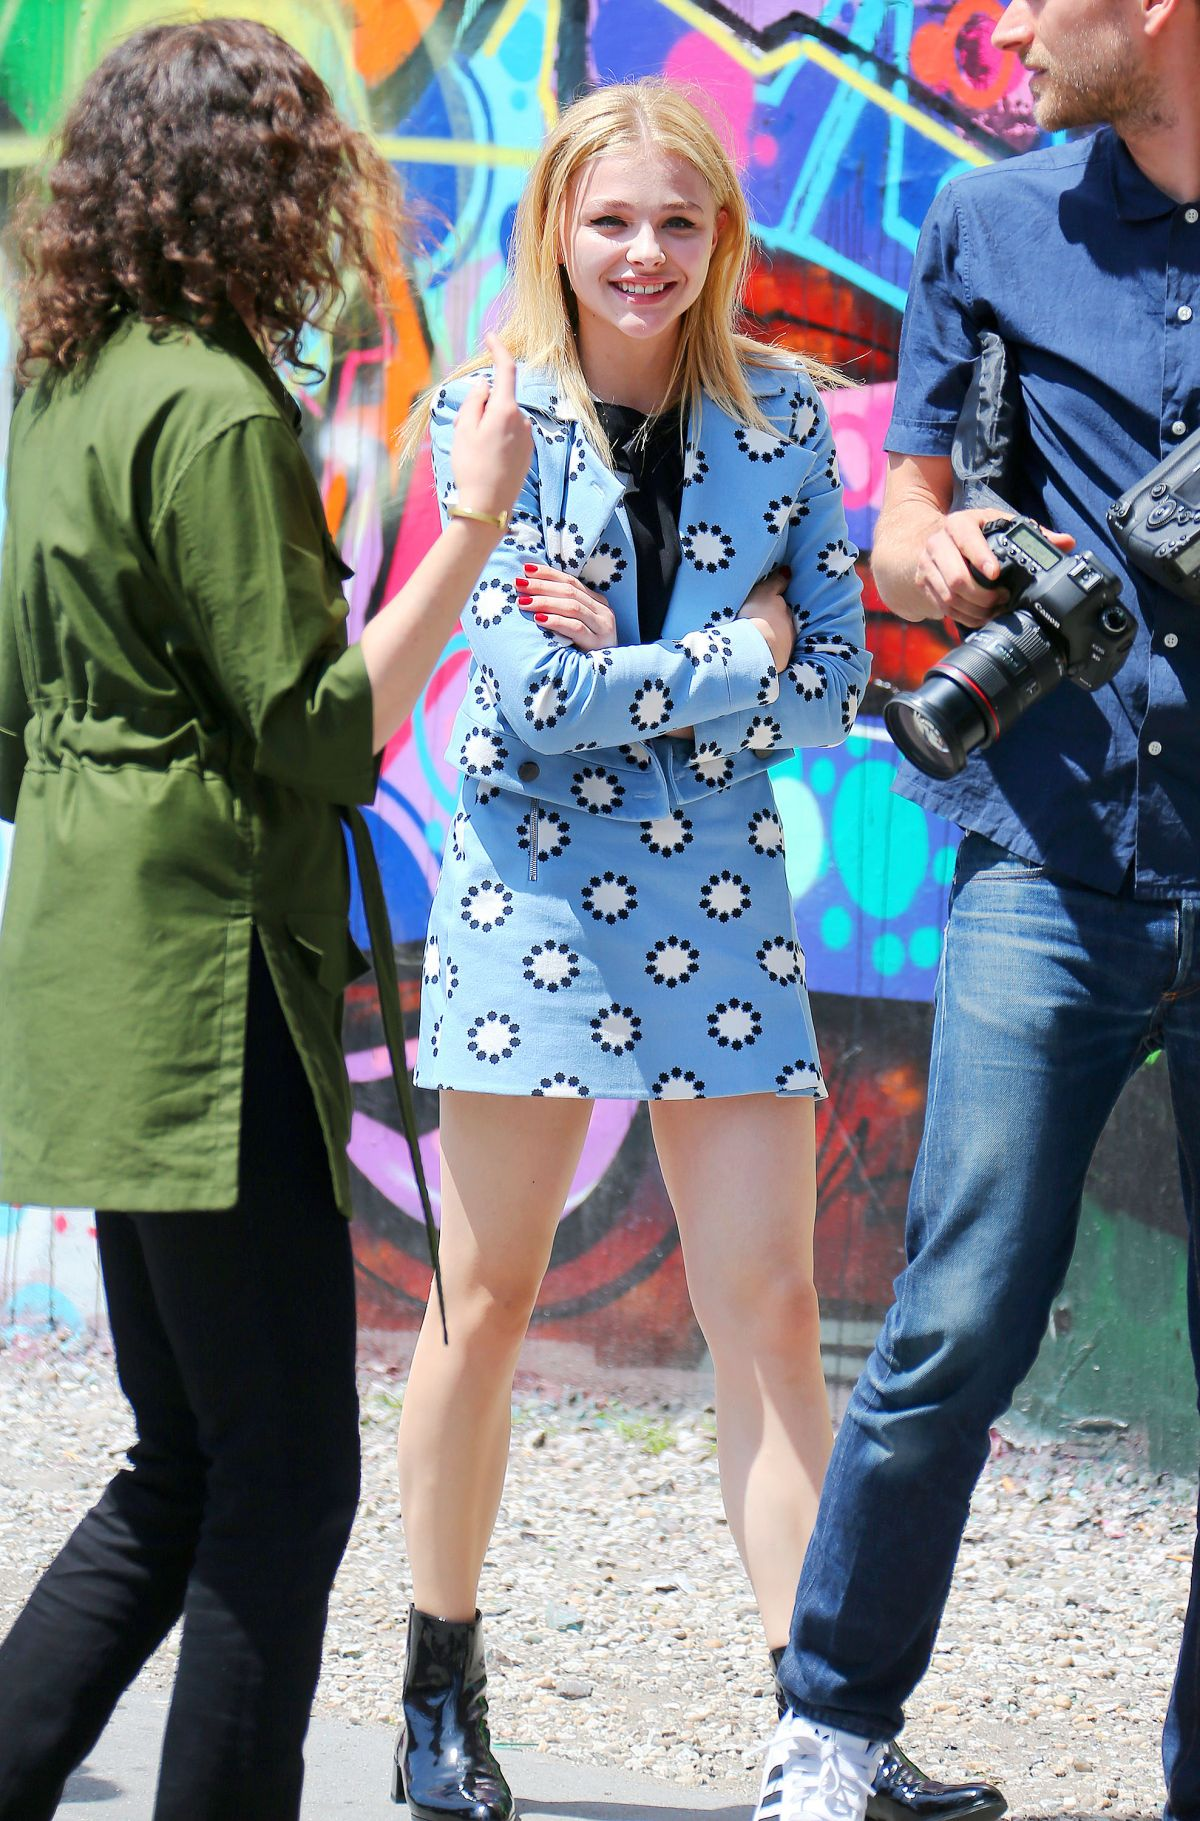 Chloe Moretz On A Photoshoot In NYC